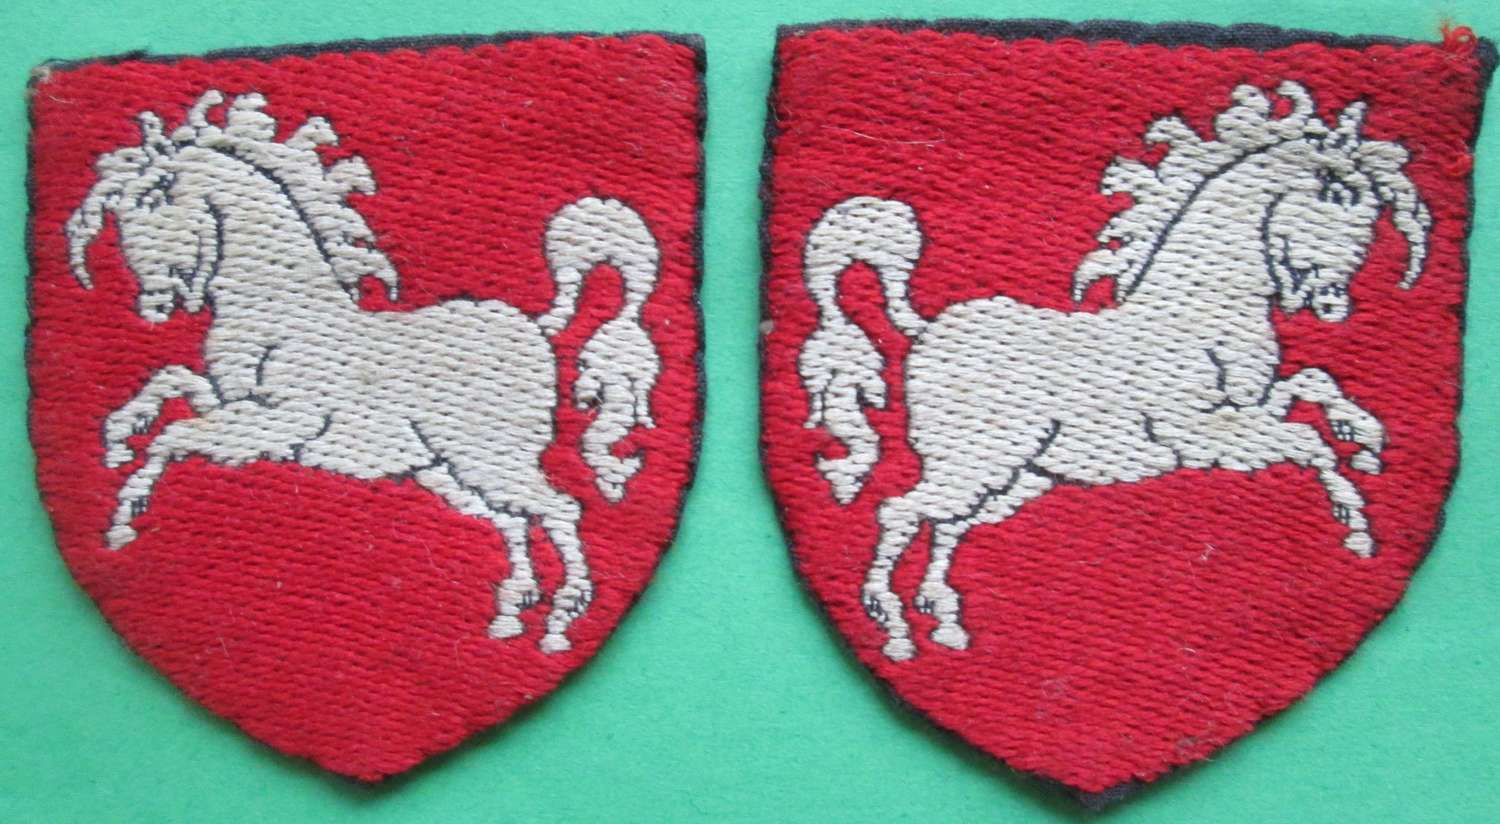 A PAIR OF POST WAR BOAR HANOVER DISTRICT FORMATION SIGNS